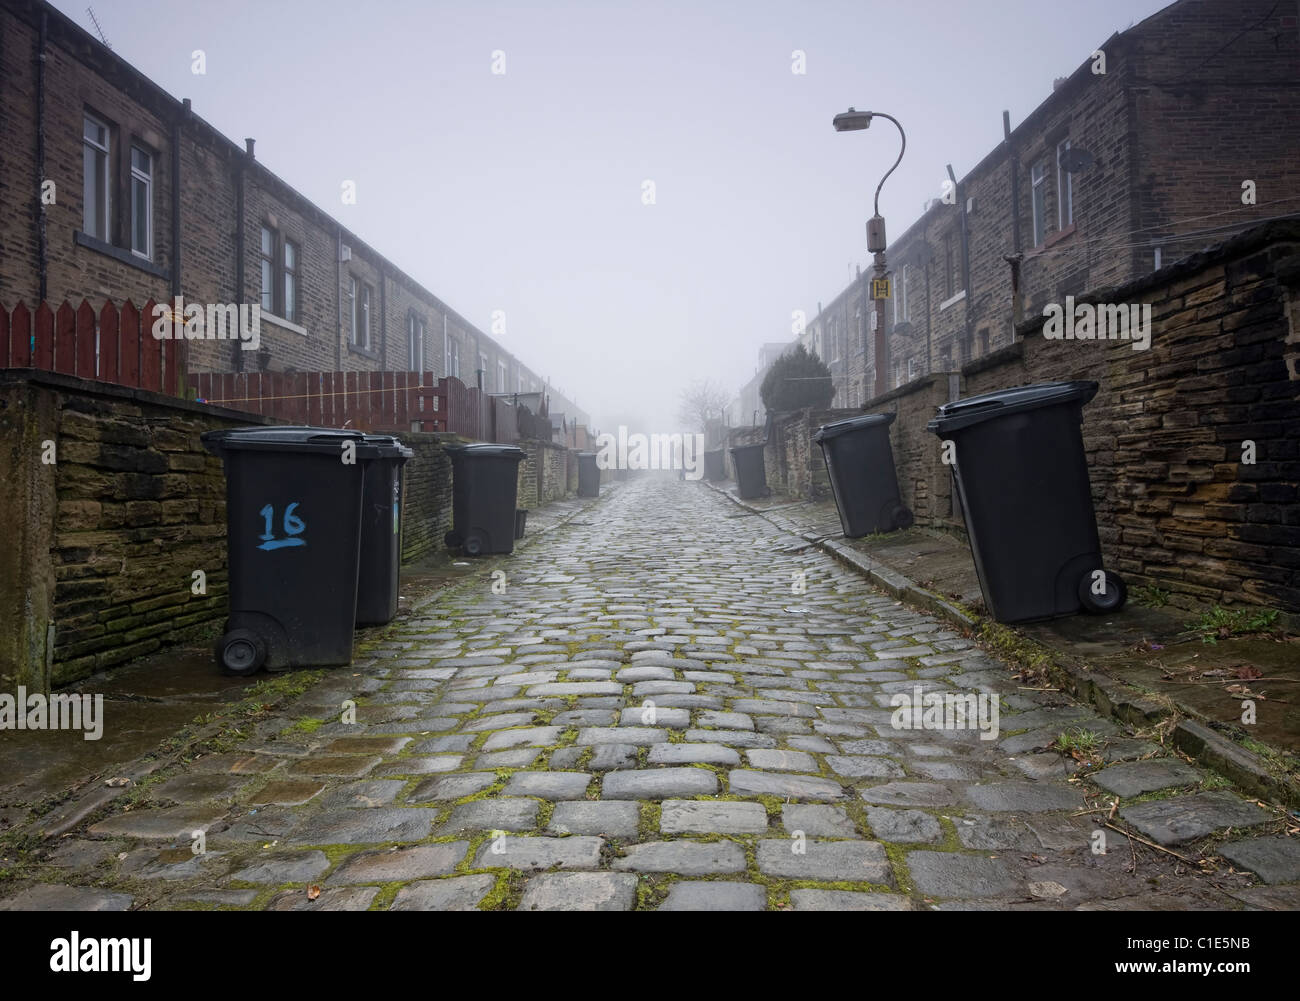 back to back terraced housing on a cobbled street with vintage lamppost in northern town. - Stock Image